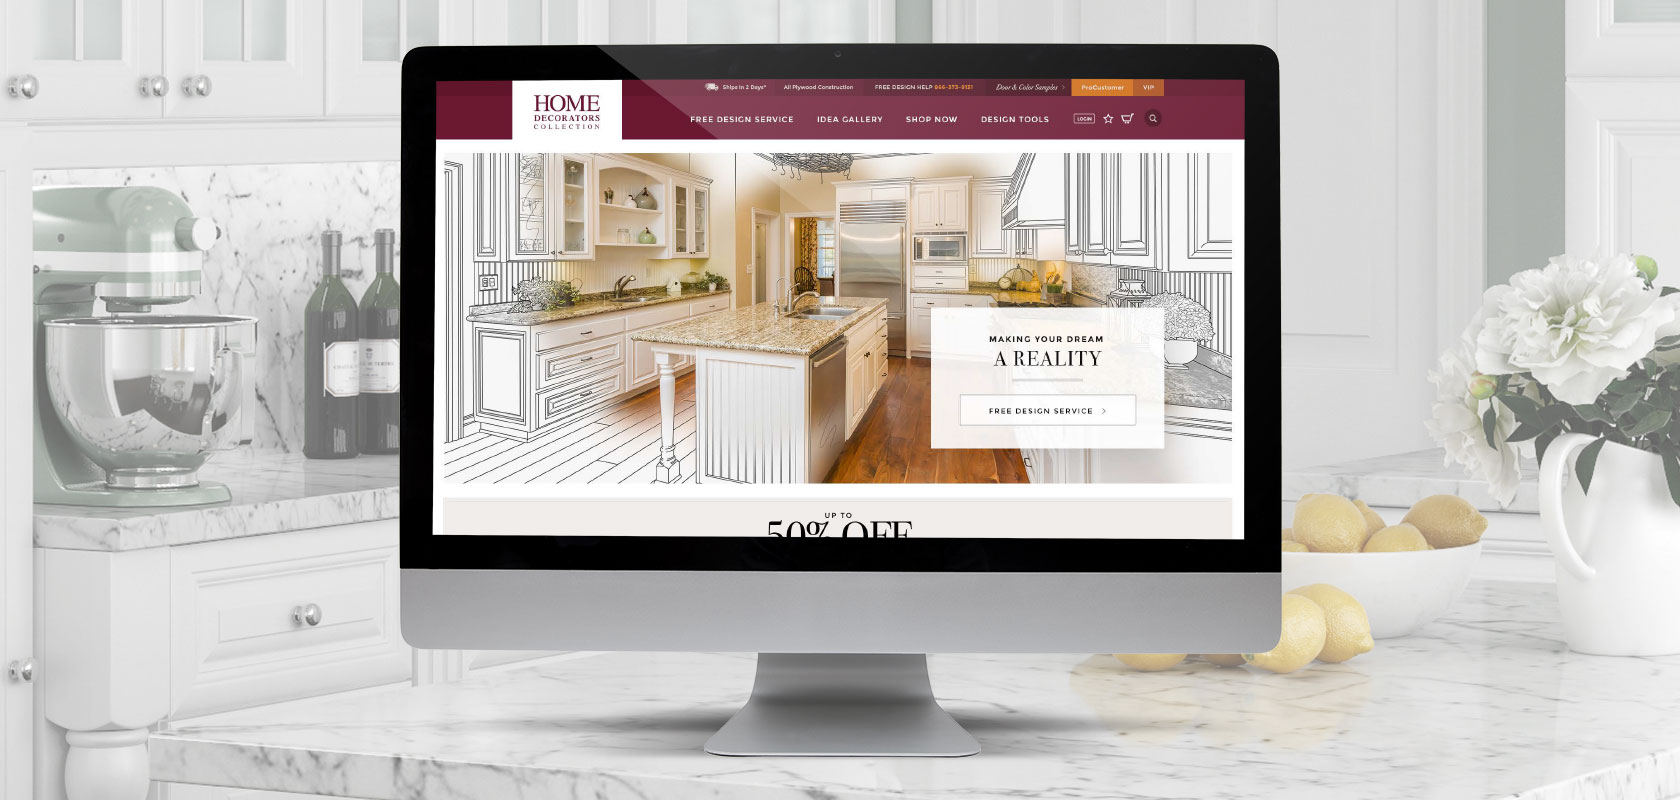 Incredible Web Design For Home Decorators Collection Tovo Download Free Architecture Designs Scobabritishbridgeorg